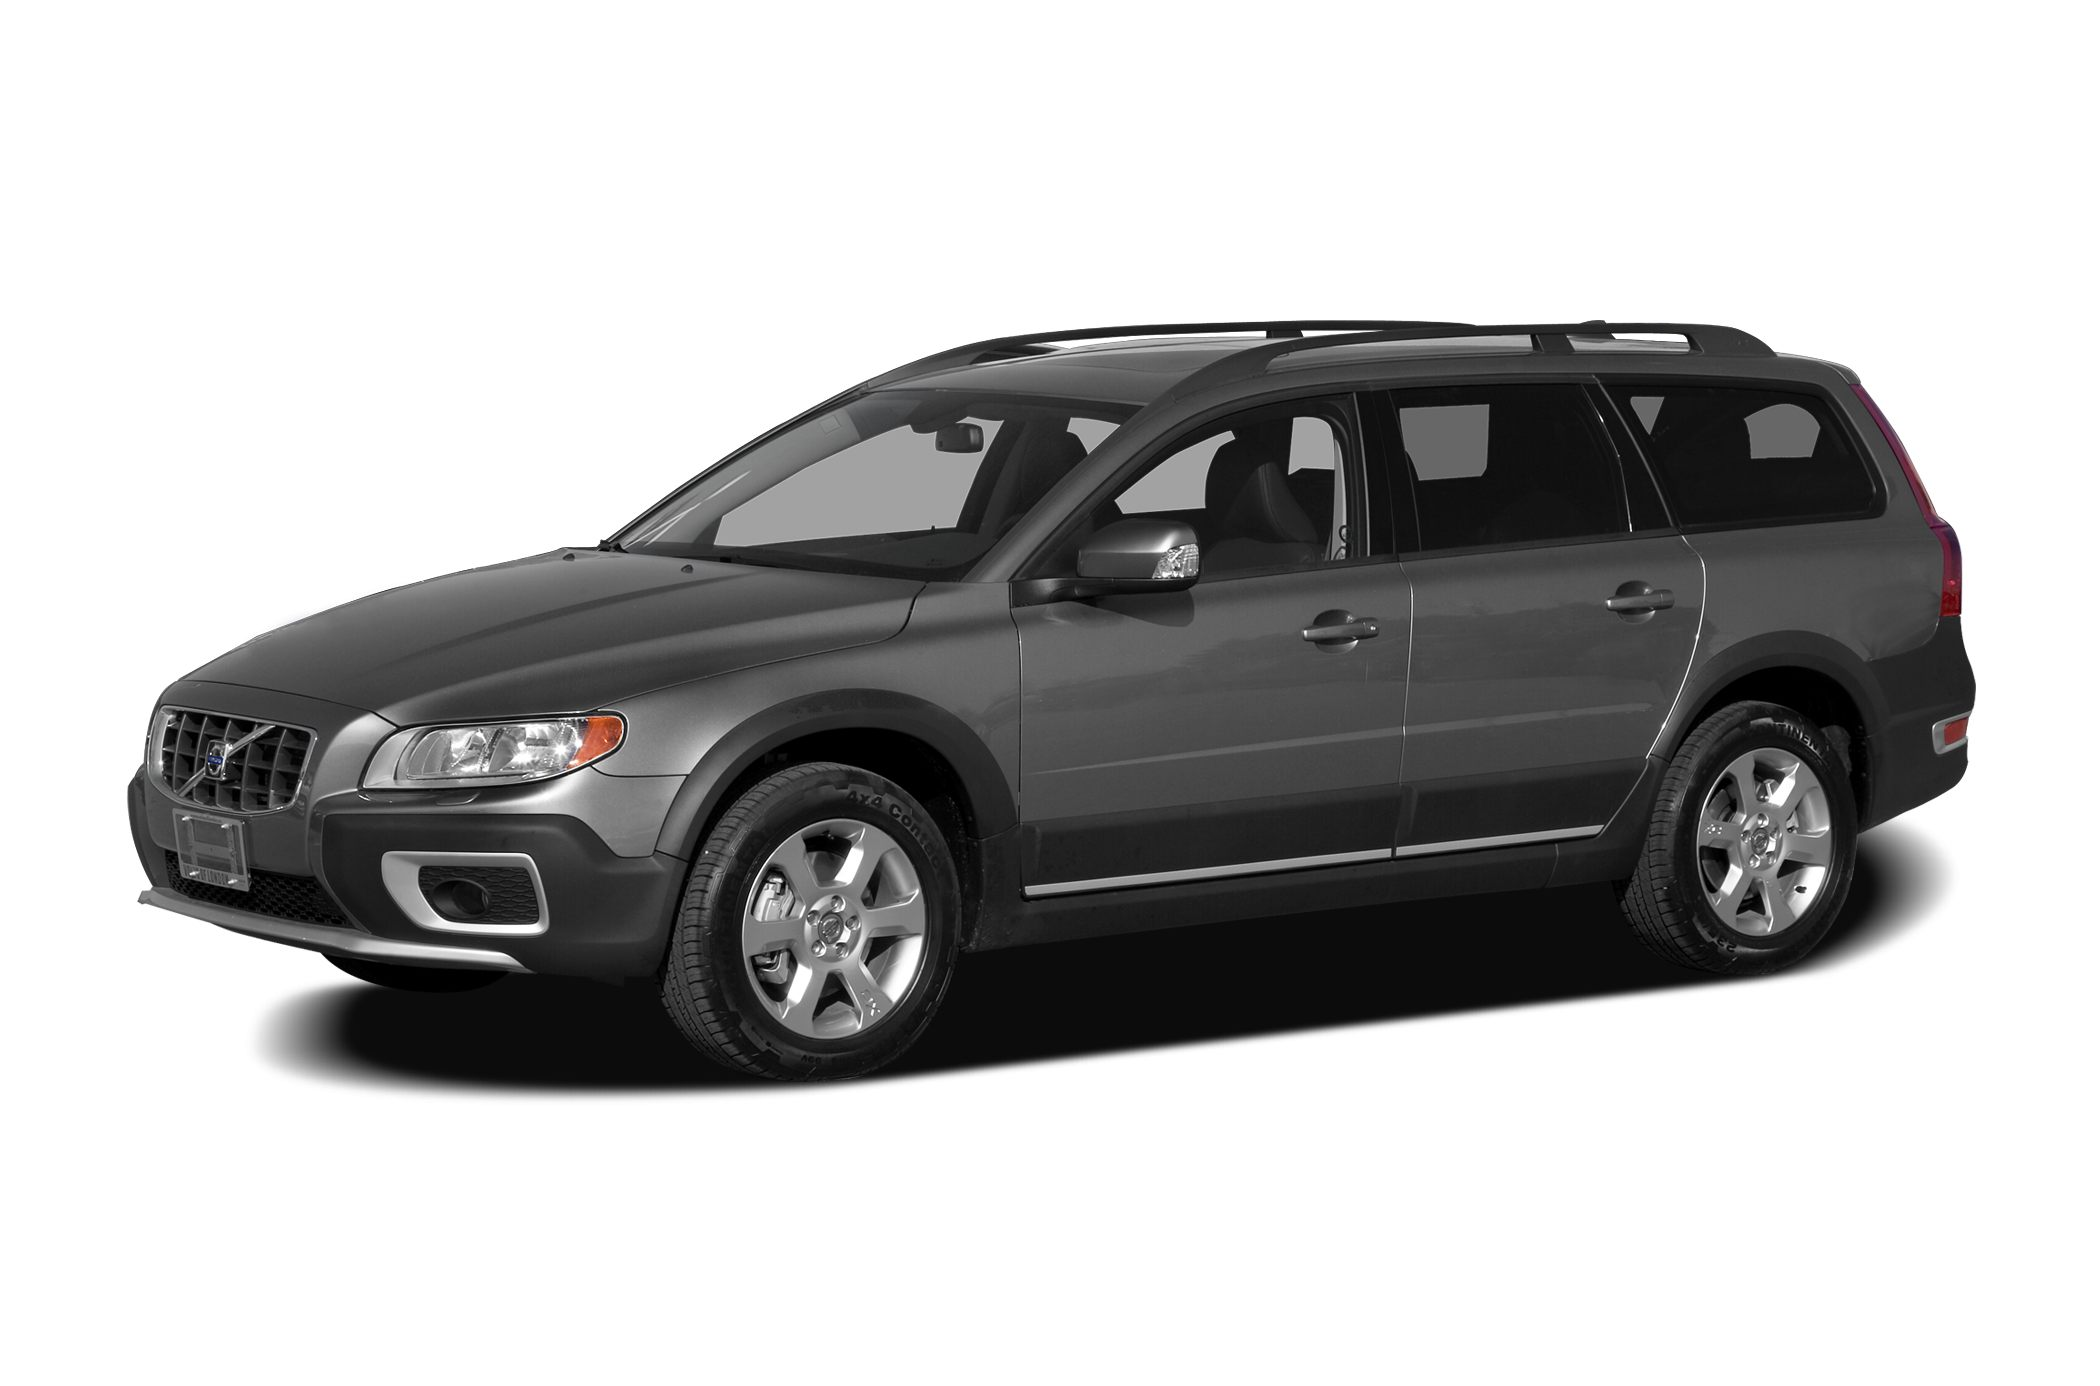 2008 Volvo XC70 32 This notable Wagon with its grippy AWD will handle anything mother nature decid